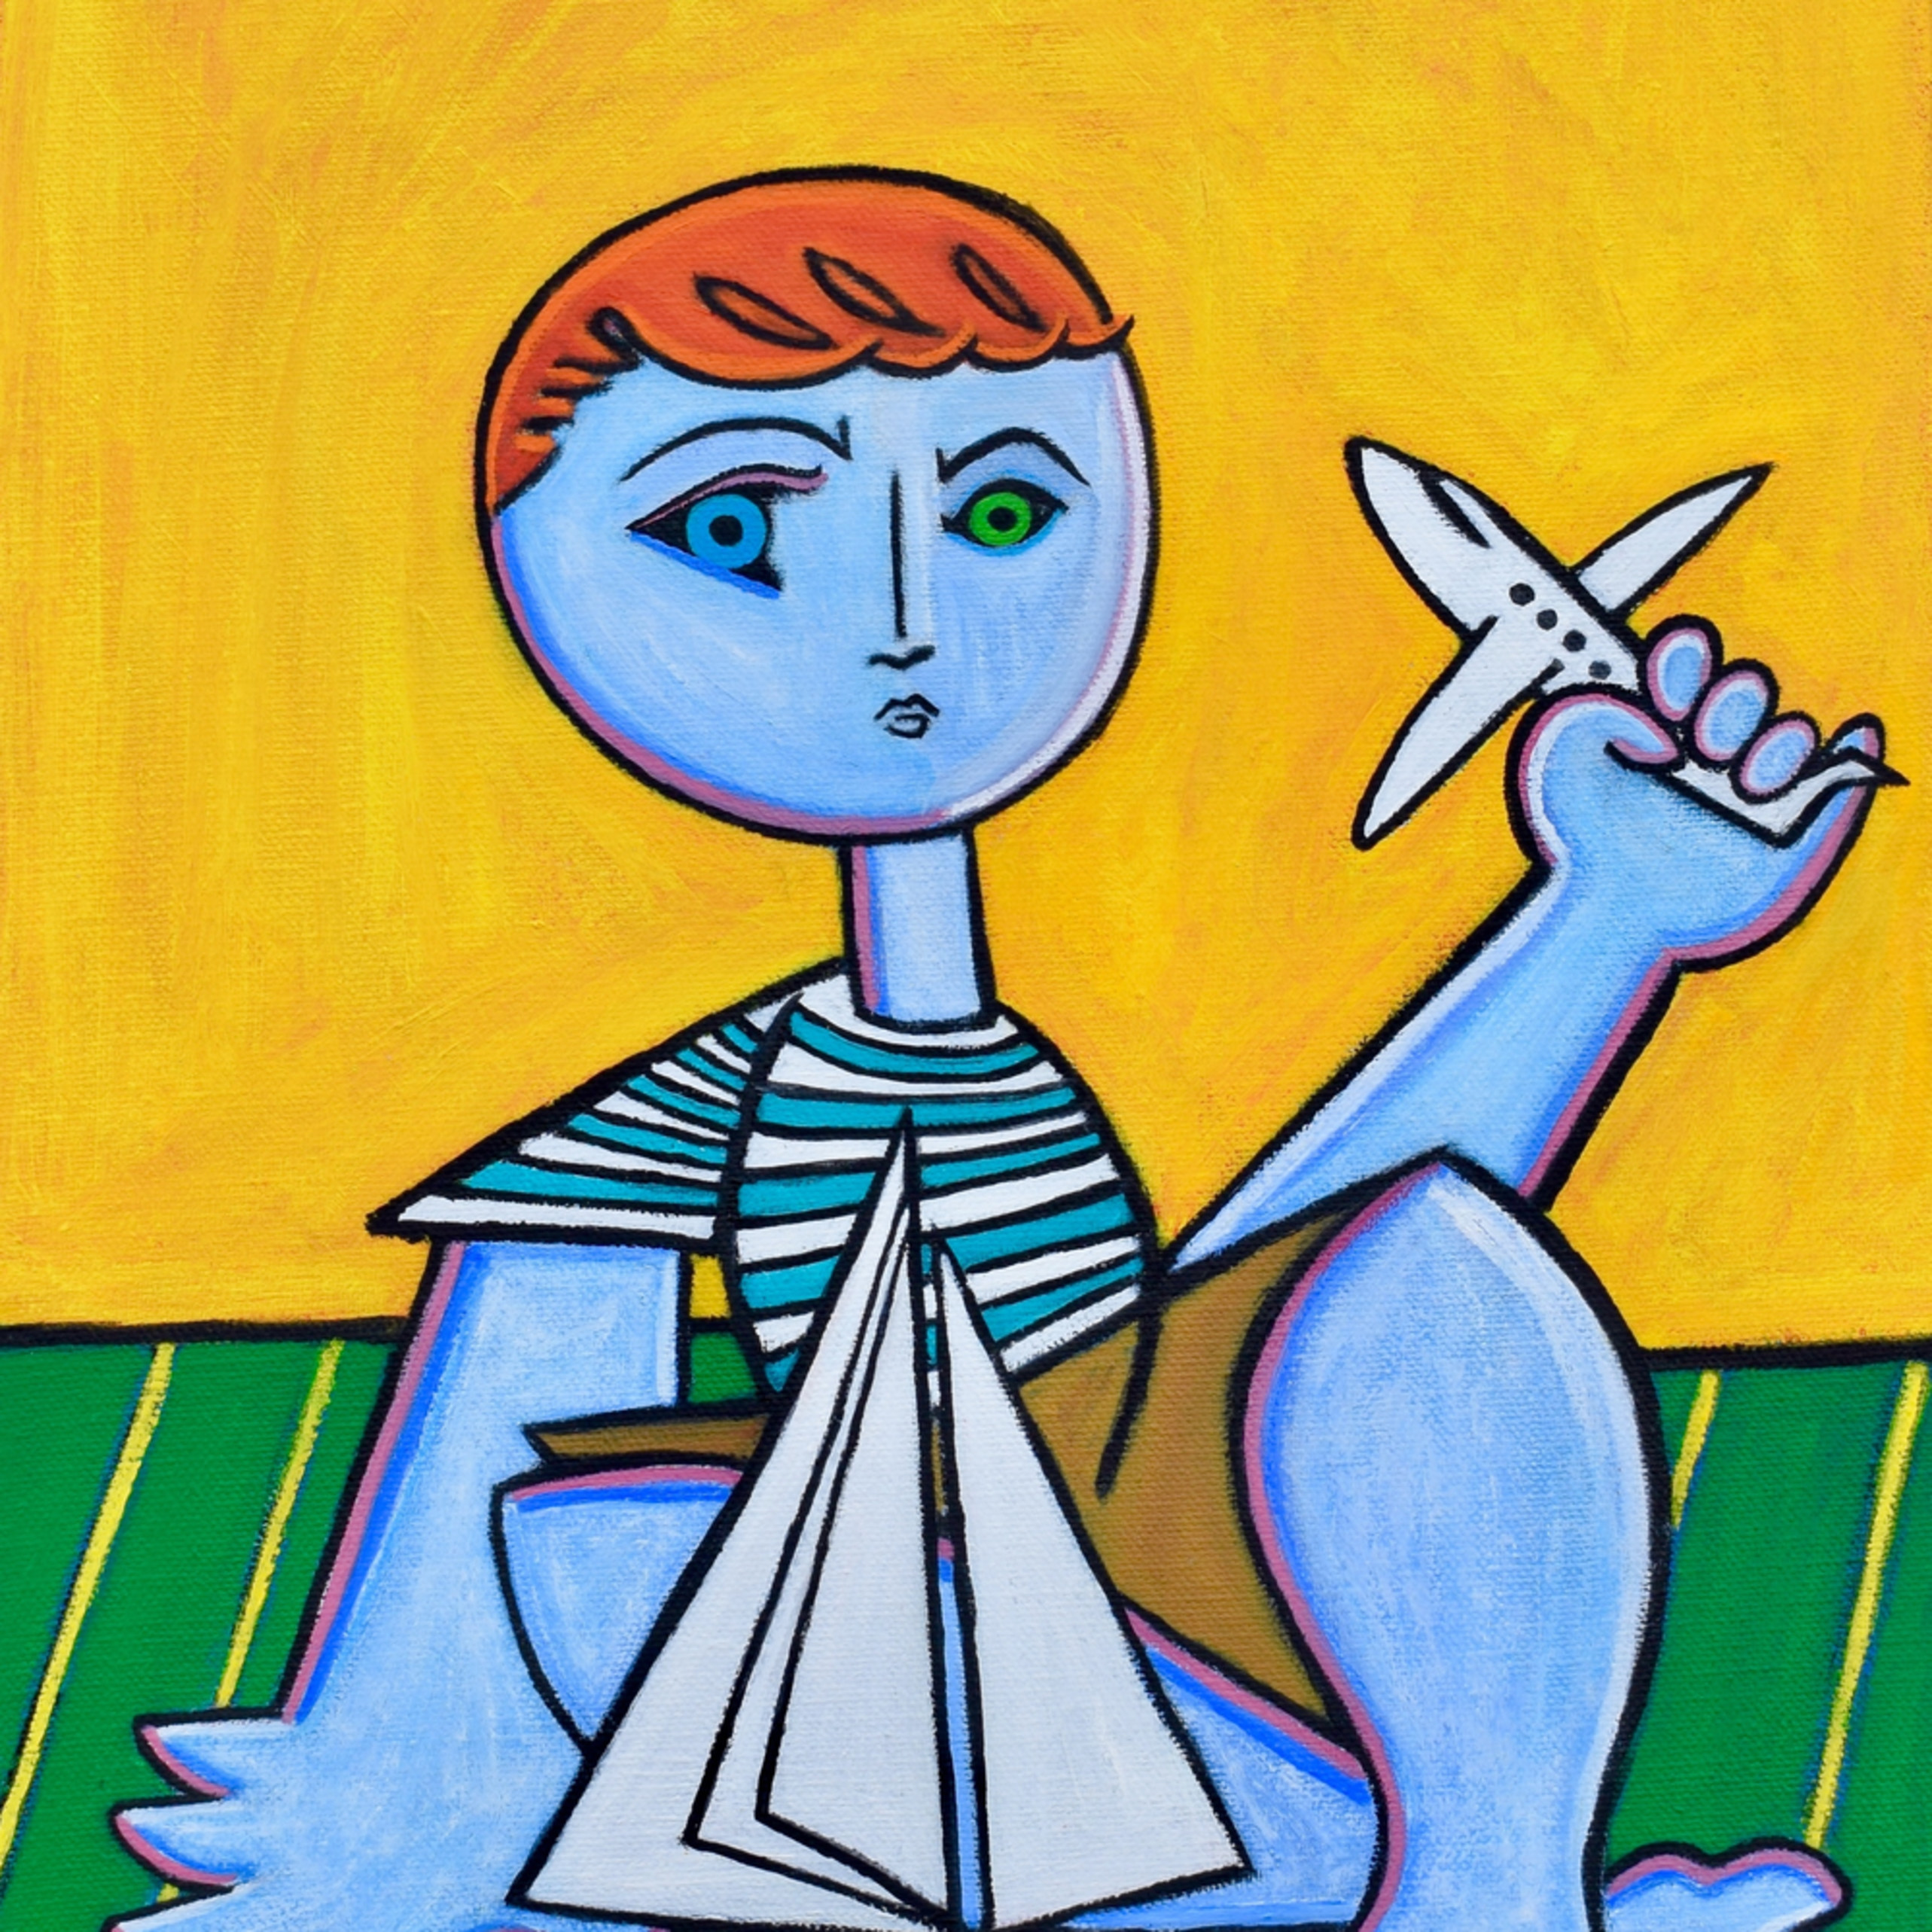 Boy with boat and plane painting paul zepeda wetpaintnyc vcicxj